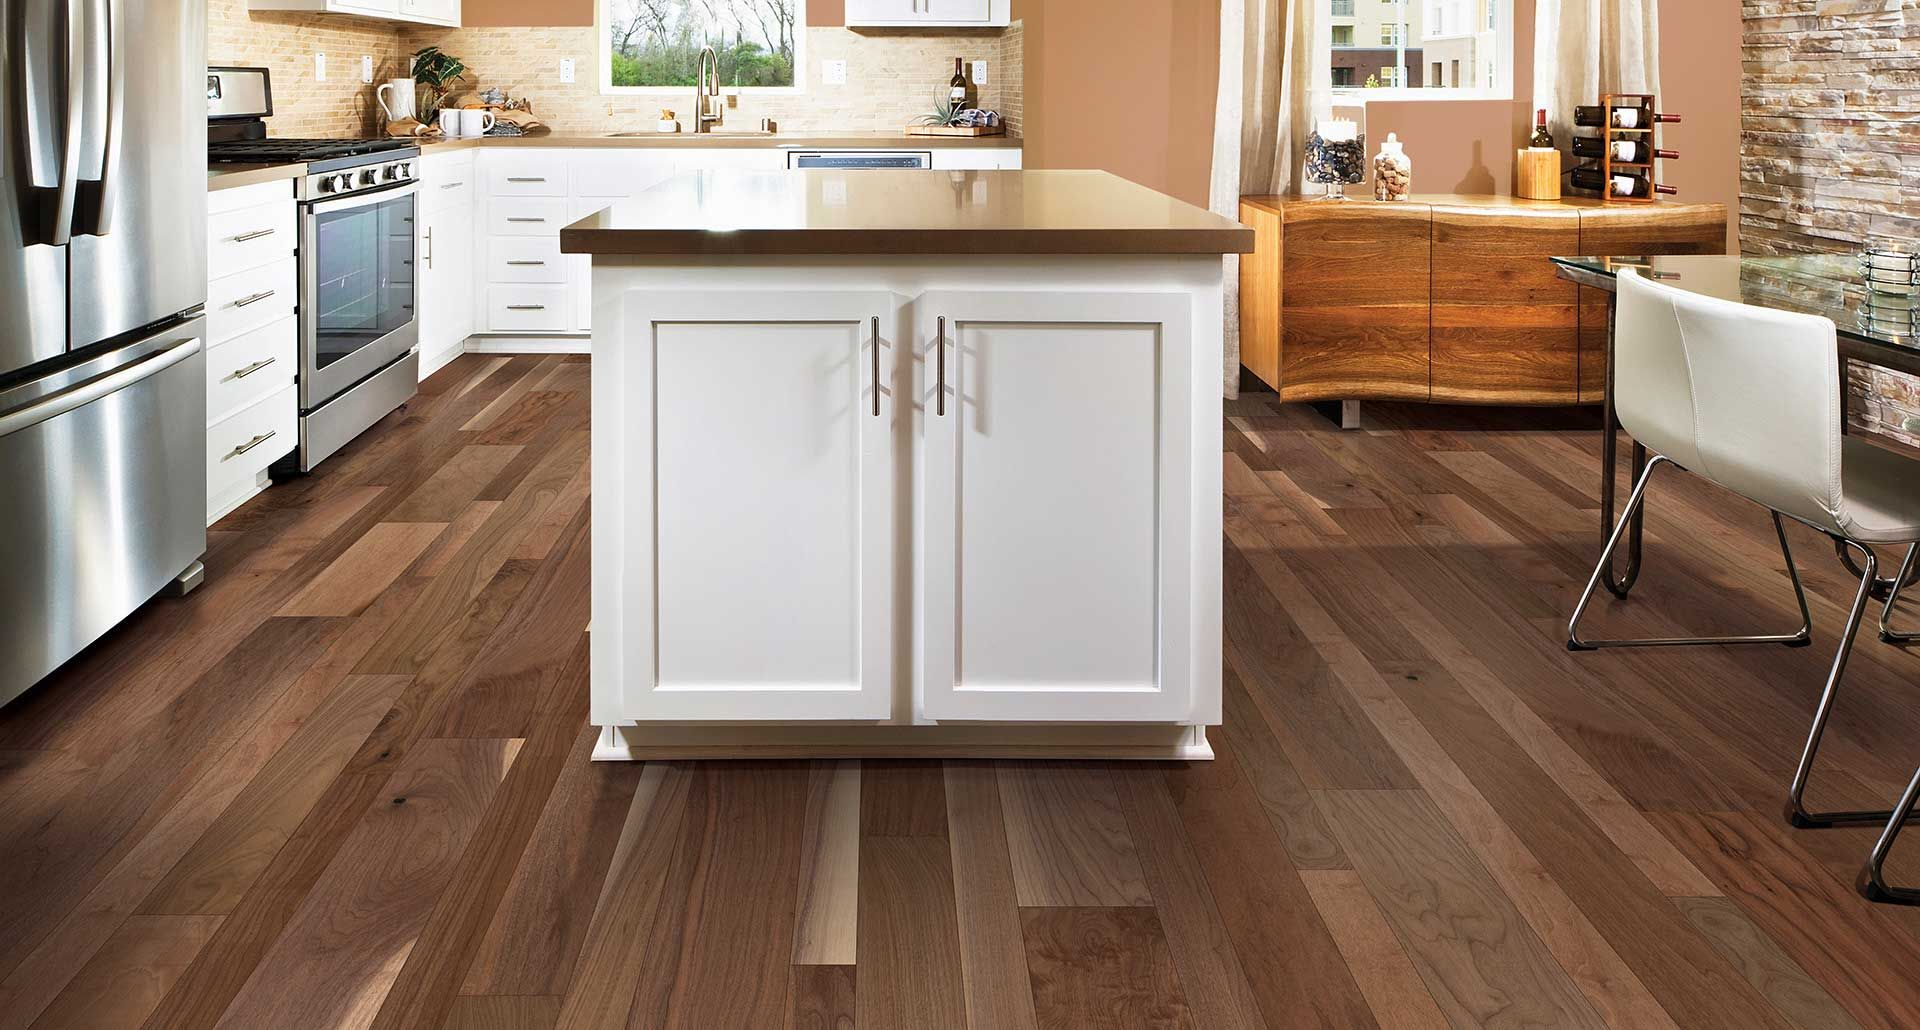 Hill Ridge Walnut Smooth Engineered Hardwood Floor. Clear Walnut Wood  Finish, 12 In. Thick, 1 Strip Plank Engineered Hardwood Flooring, Lifetime  Warranty.